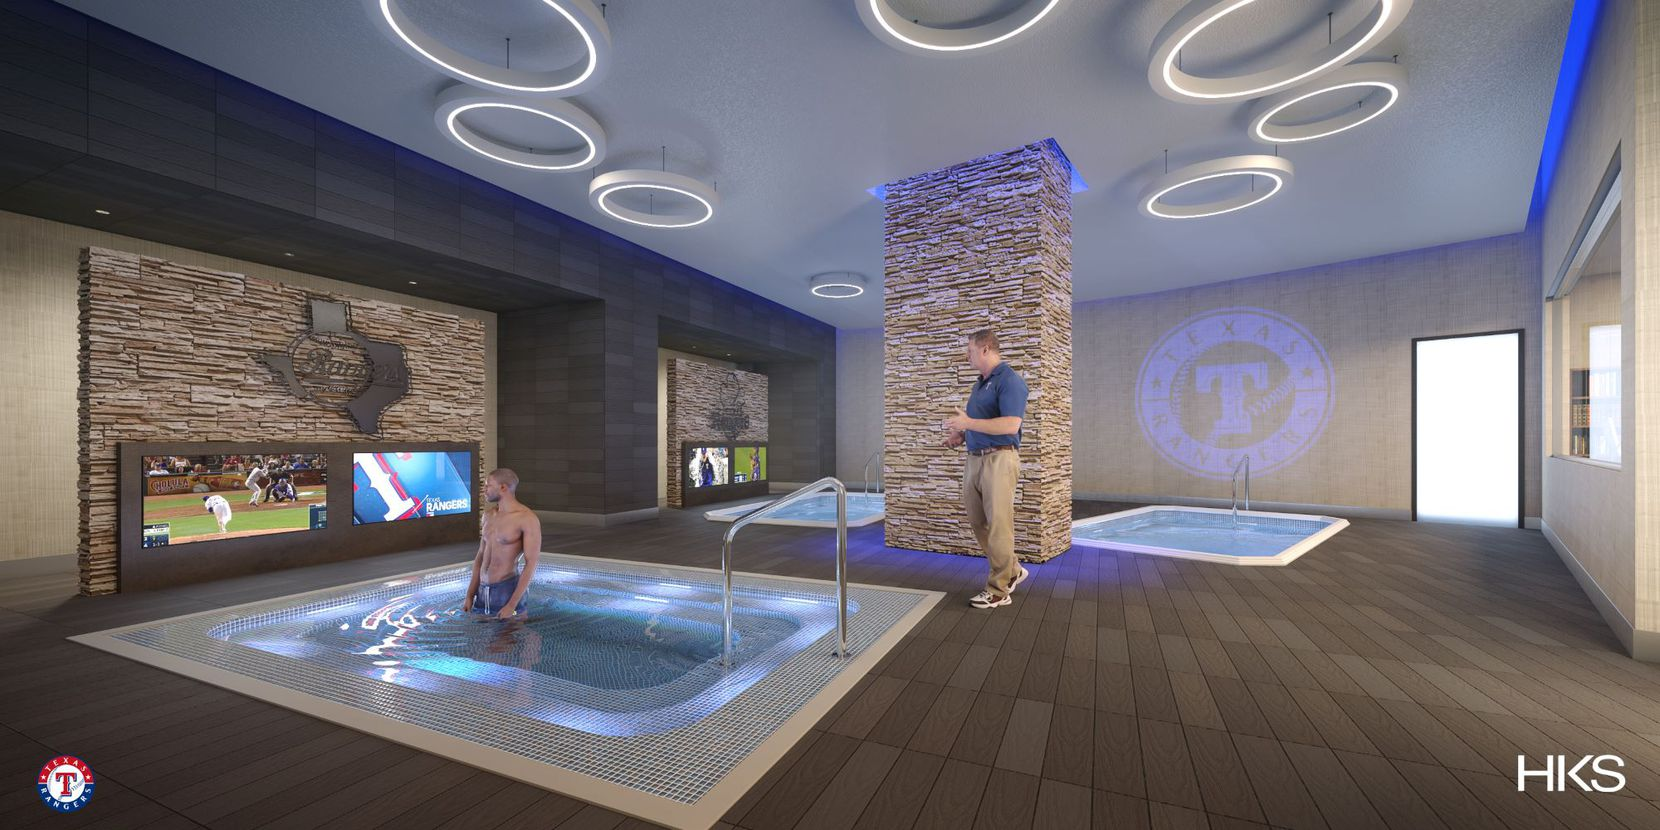 A rendering of the Rangers' hydrotherapy area at Globe Life Field.